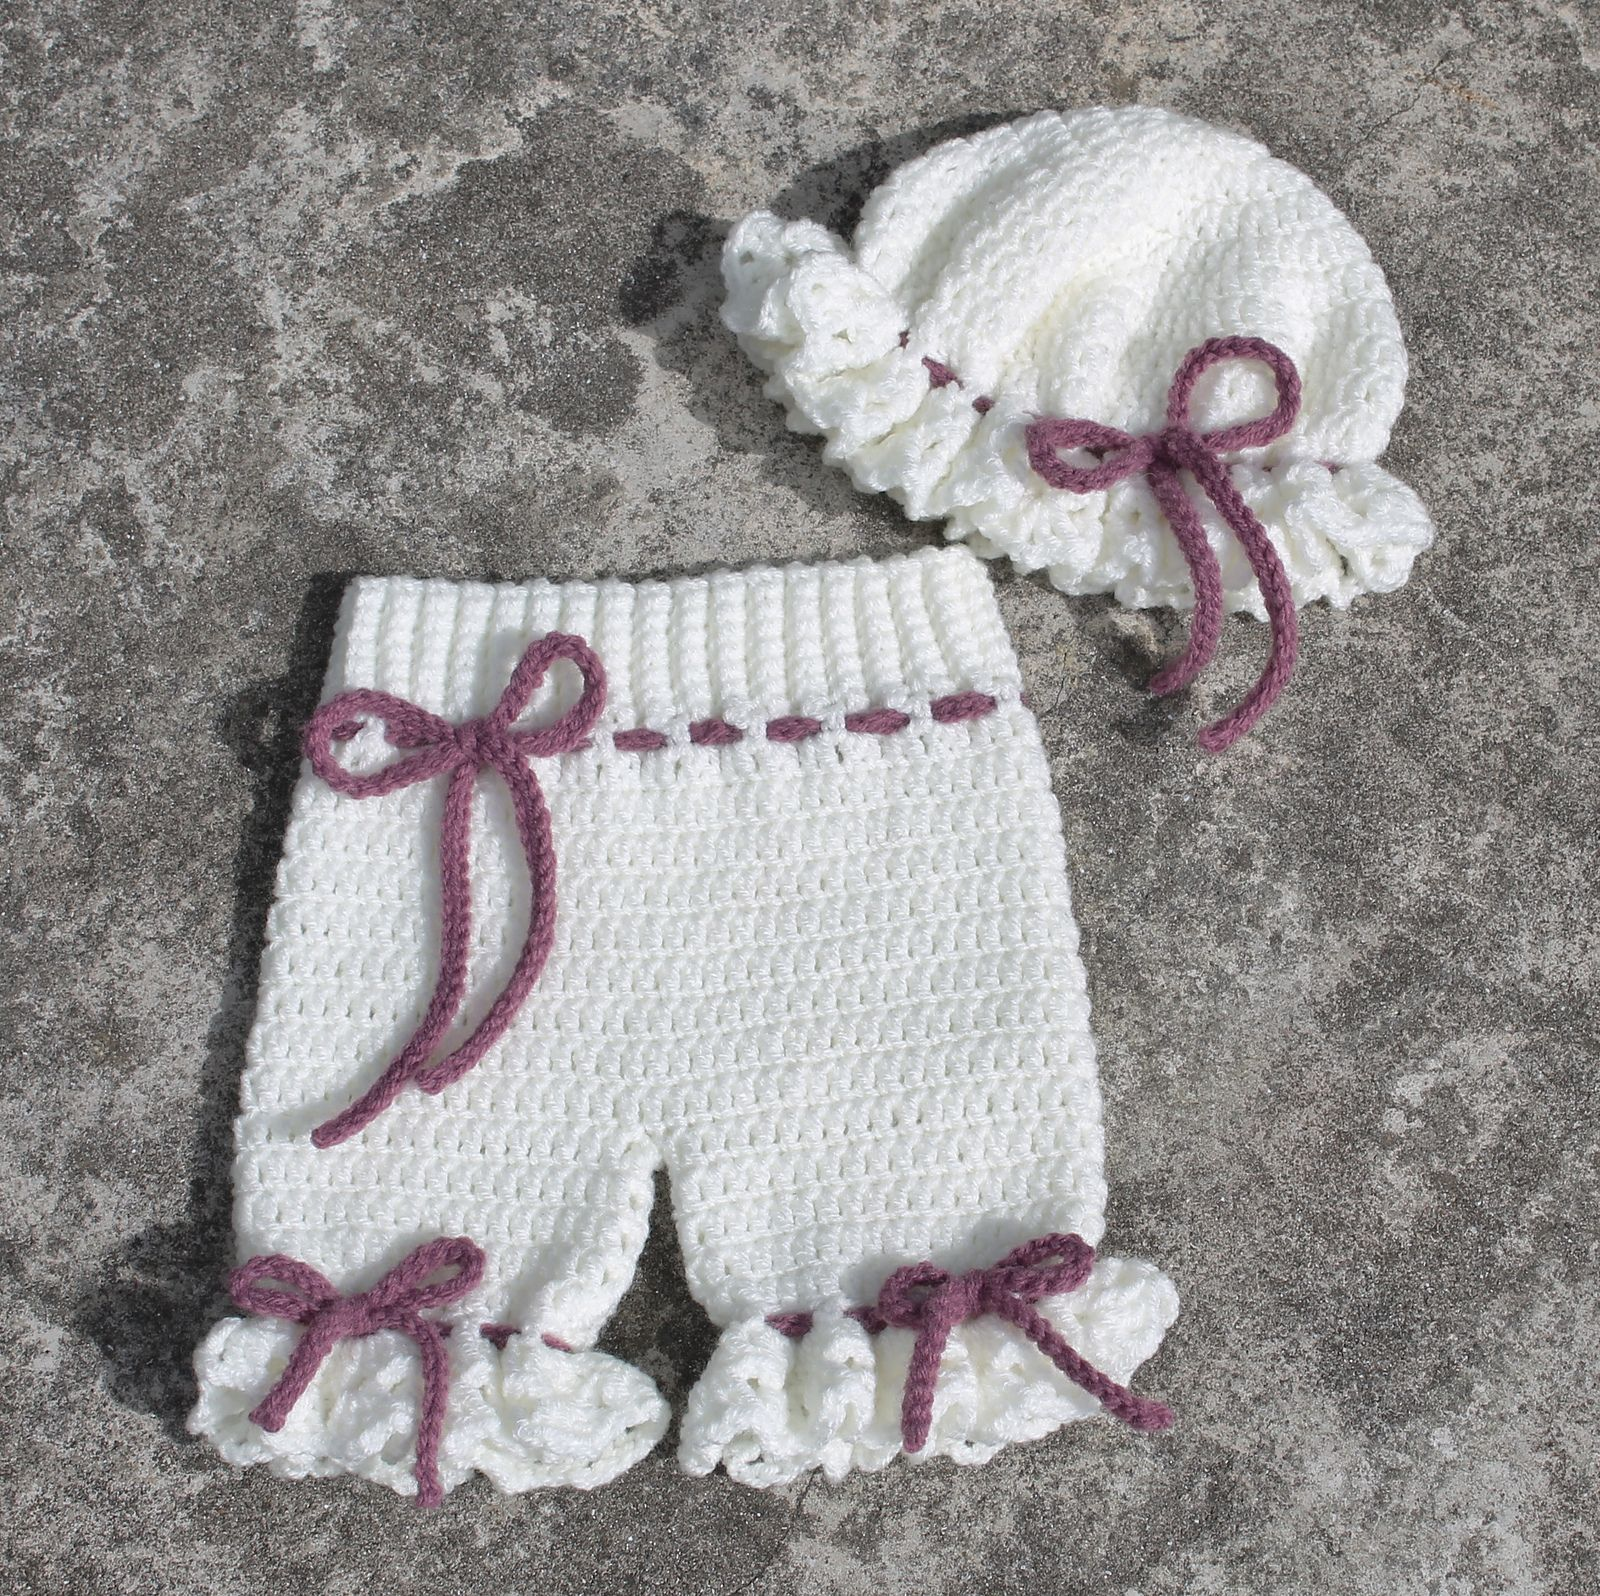 Add a touch of Victorian style to your photographs with this sweet little Pantaloons and Mob Cap pattern from Thomasina Cummings Designs. #handmade #tcdesignsuk #crochet